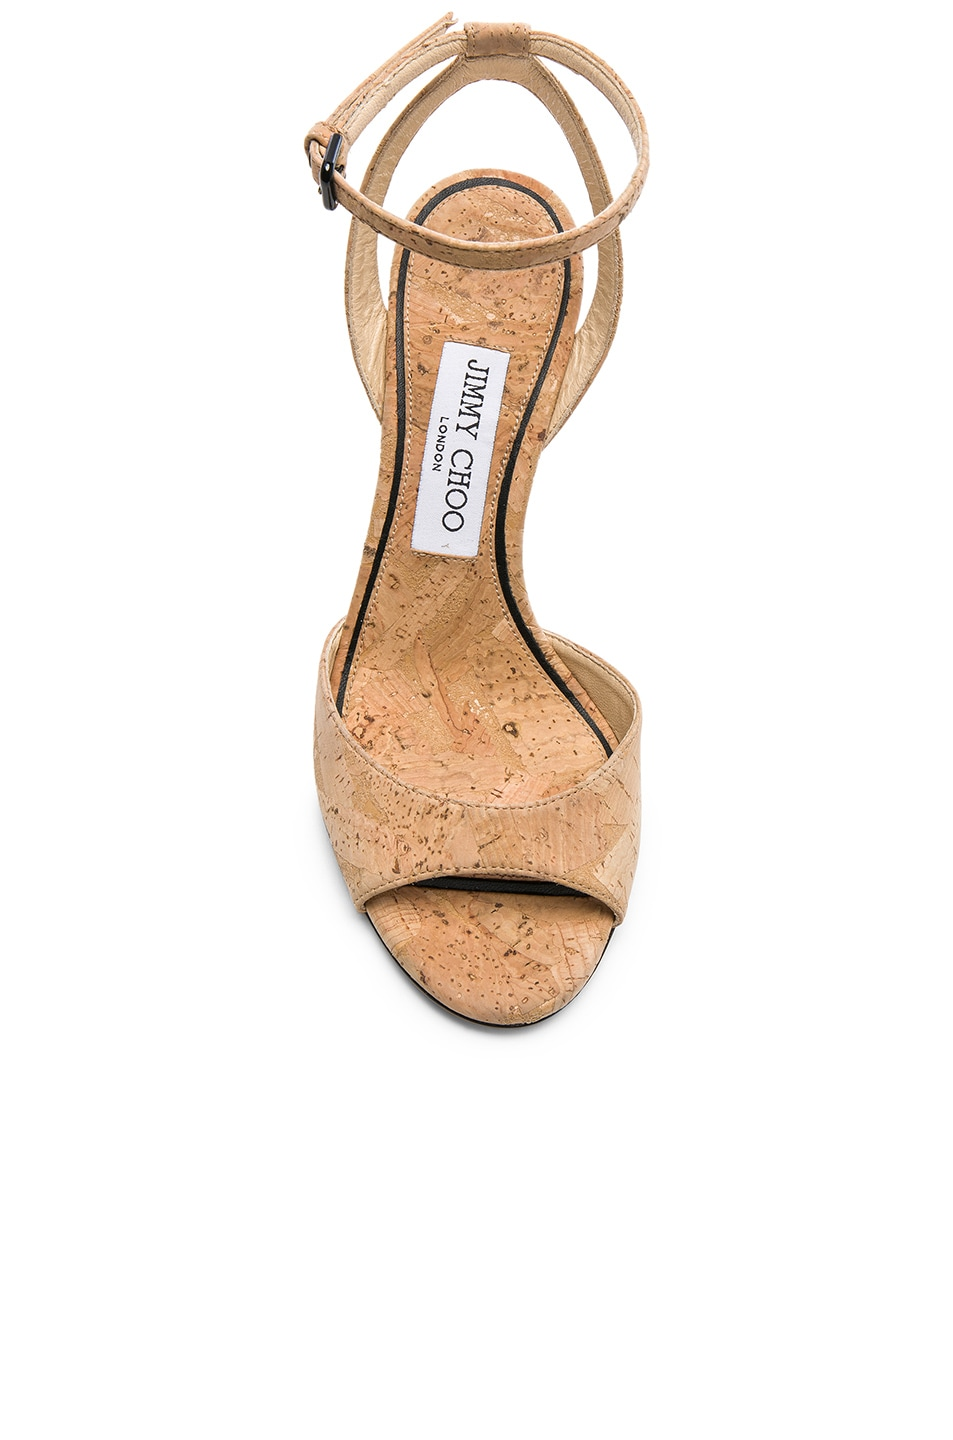 e09864289a4c Image 4 of Jimmy Choo Miranda 100 Cork Sandal in Nude